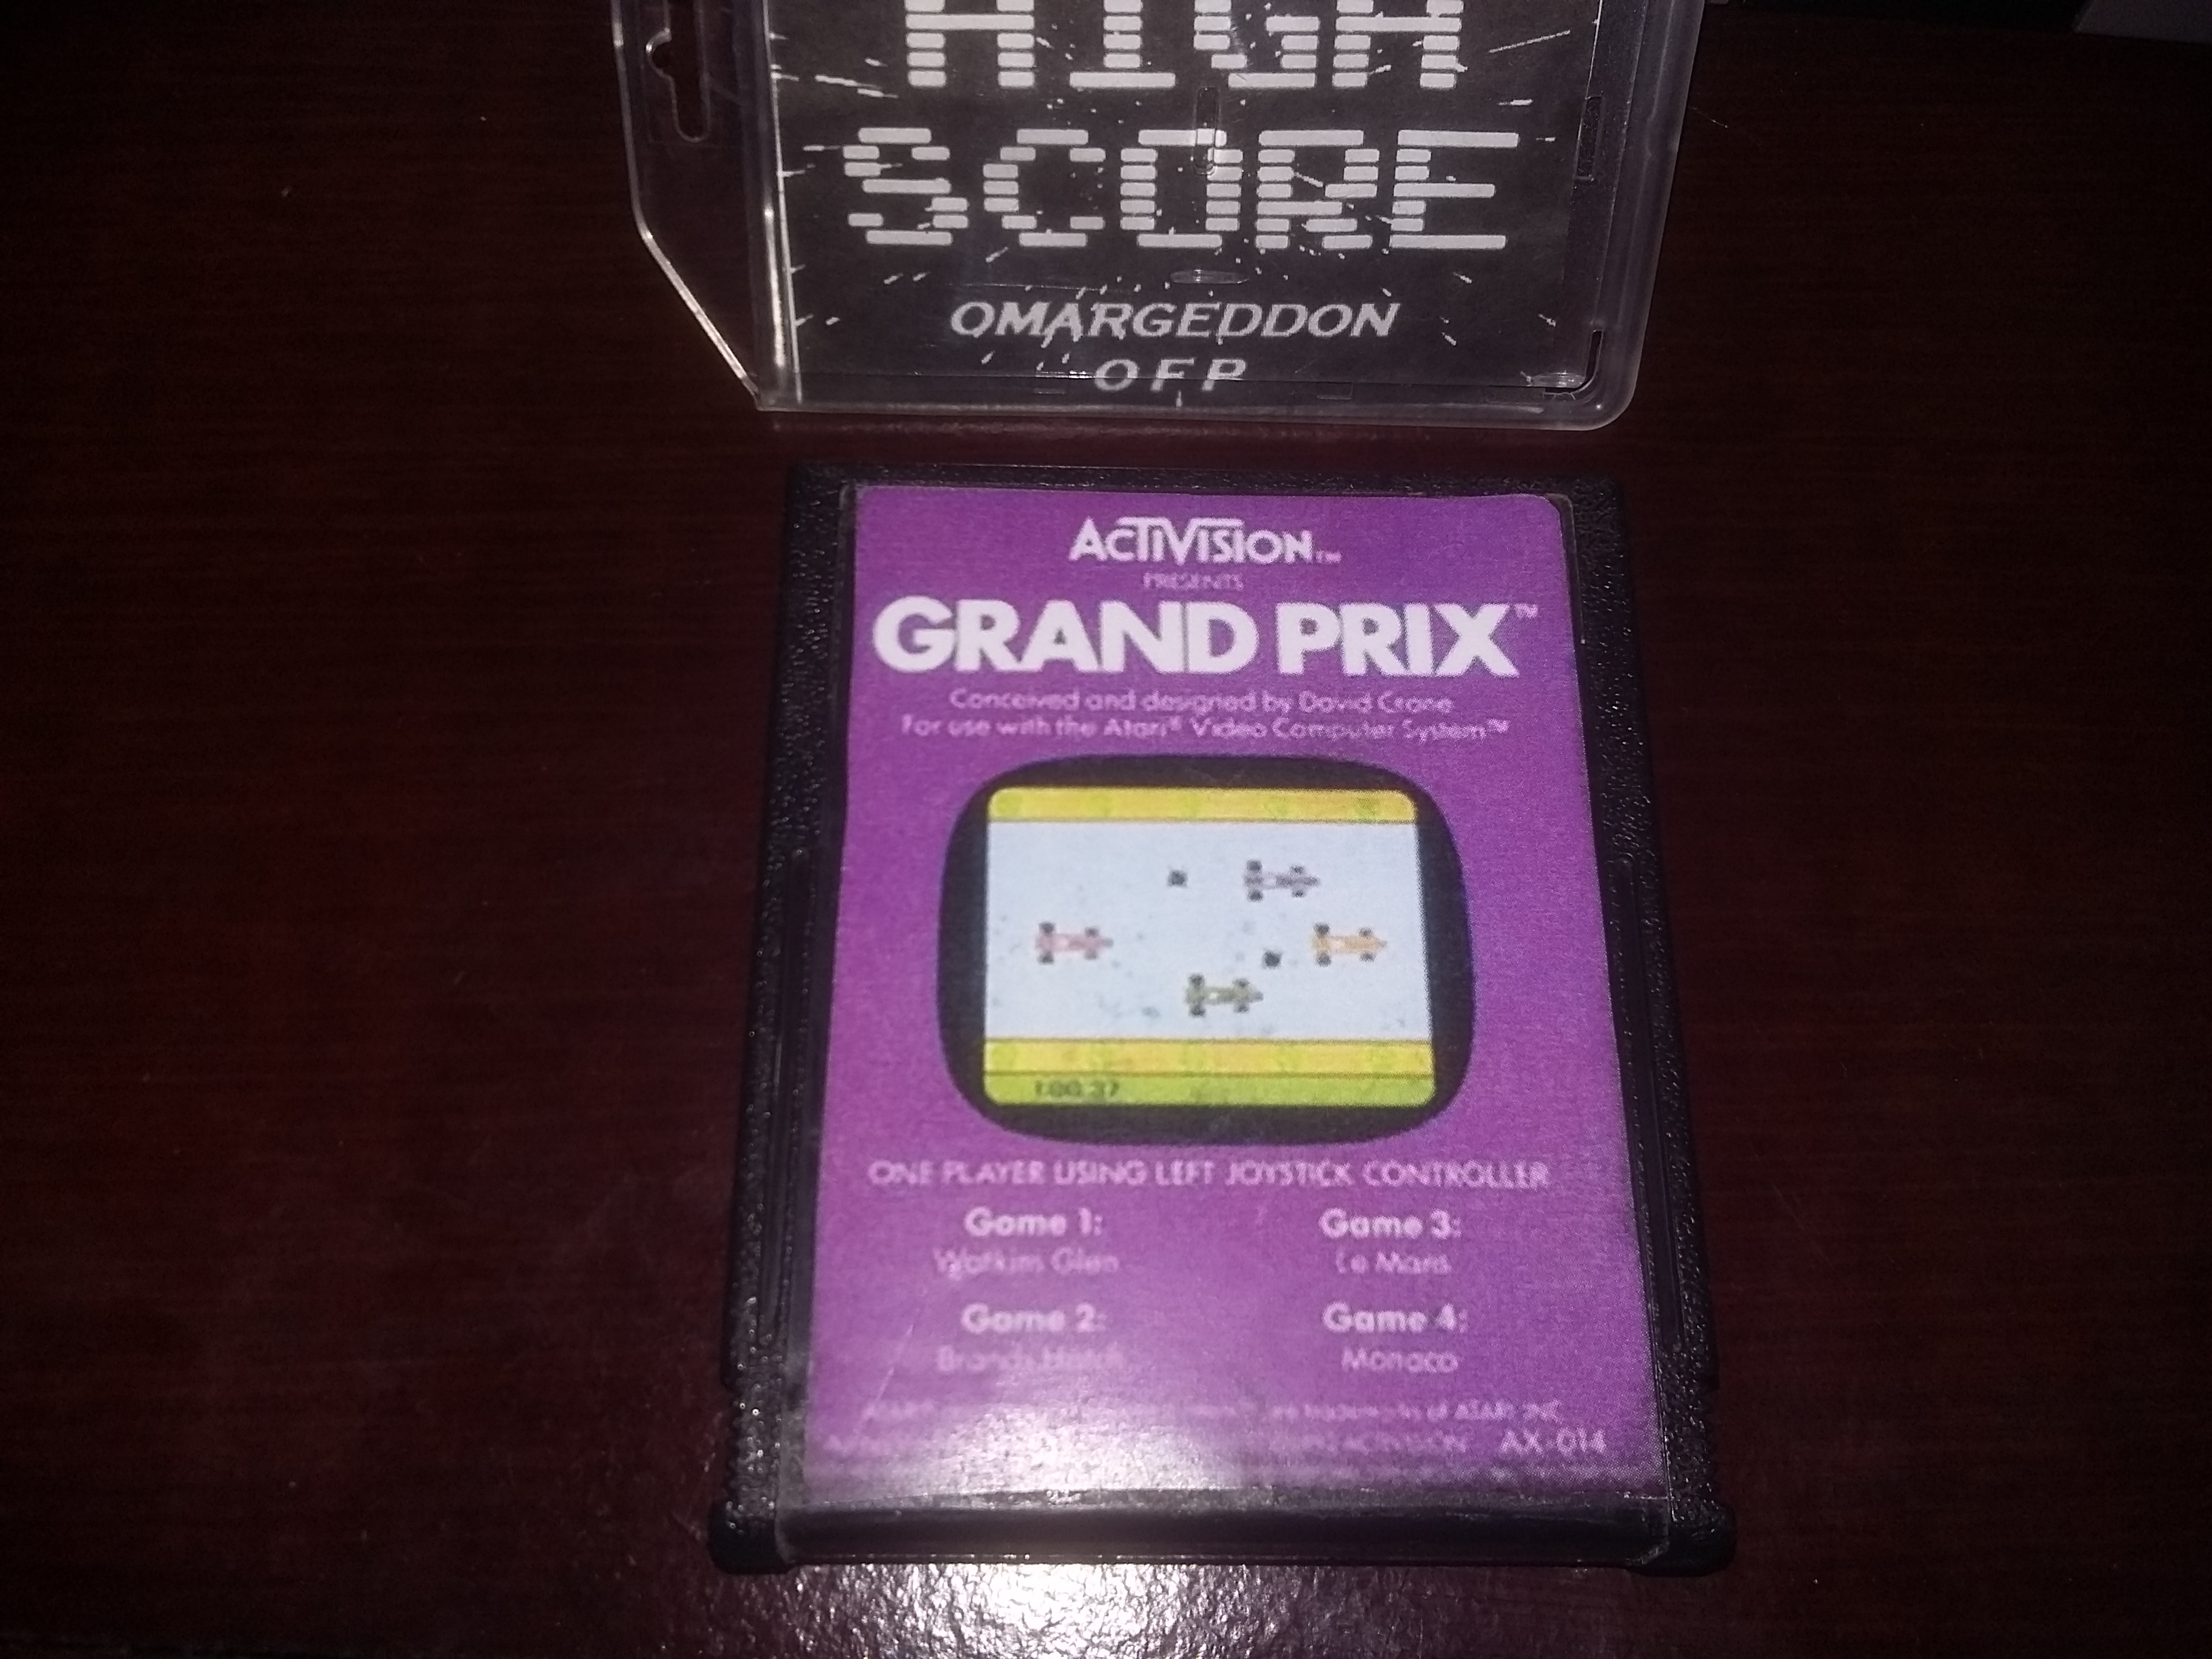 Grand Prix: Game 4 time of 0:02:39.51